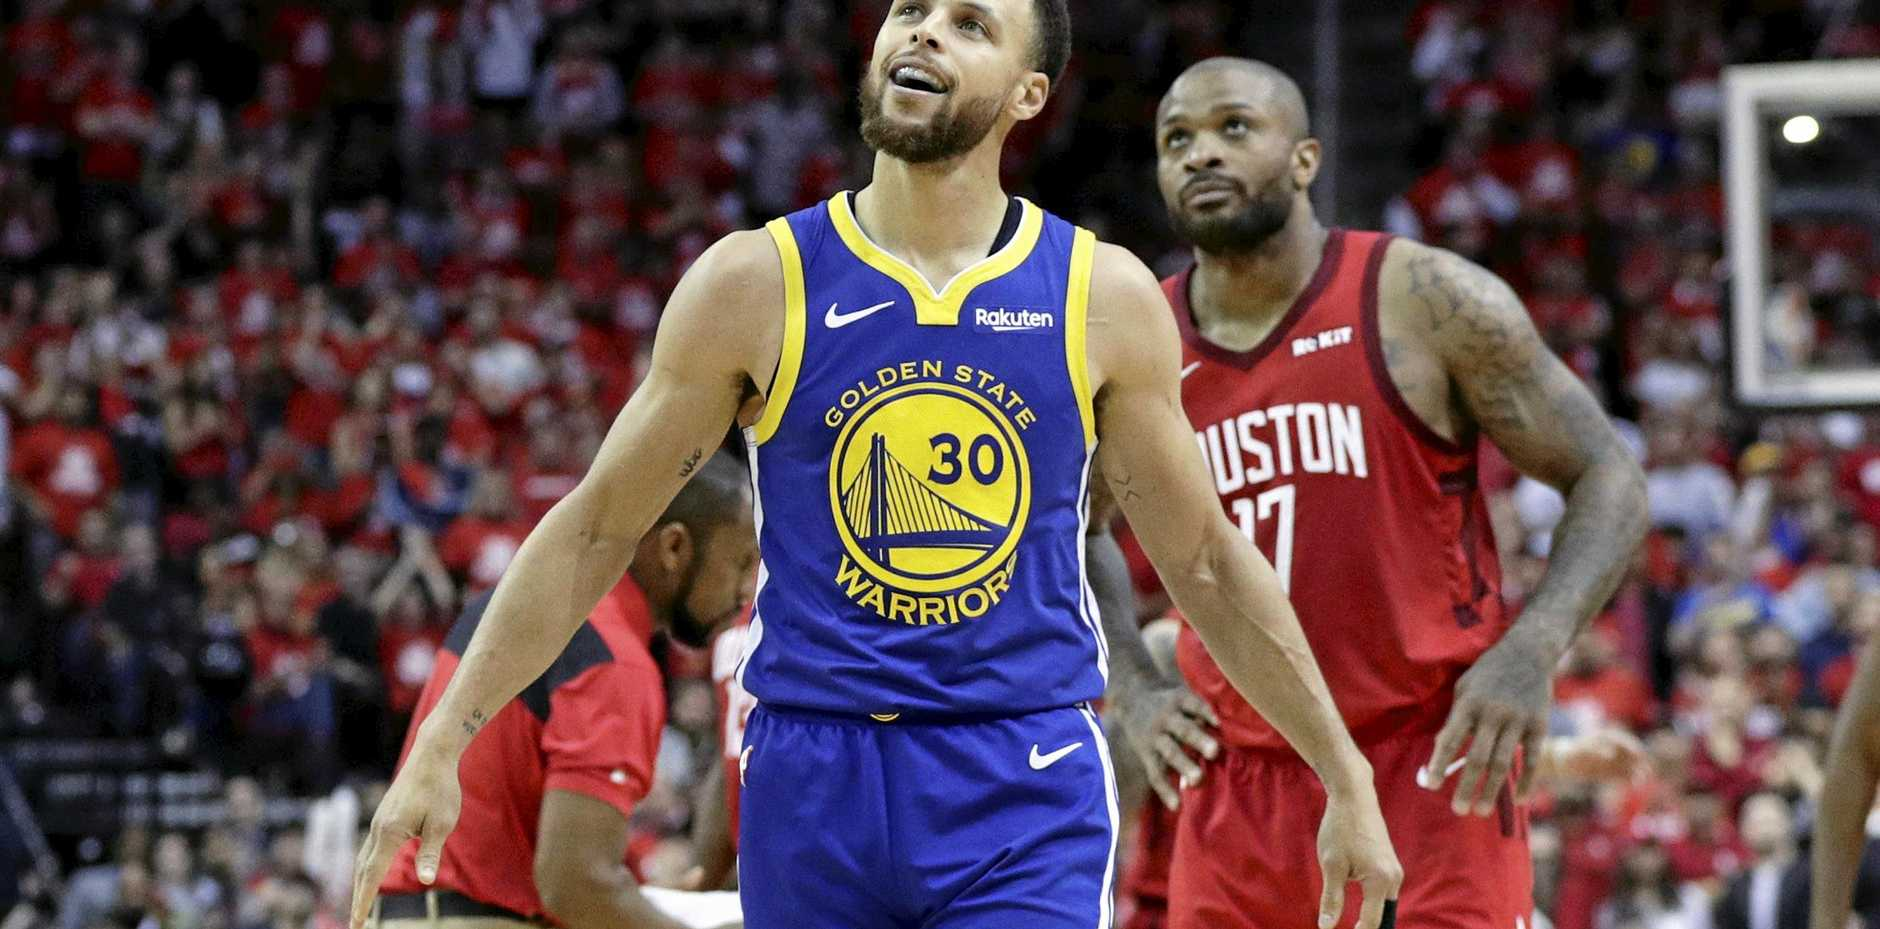 Golden State Warriors guard Stephen Curry looks pretty pleased with himself during the second half against the Houston Rockets. Picture: Eric Gay/AP